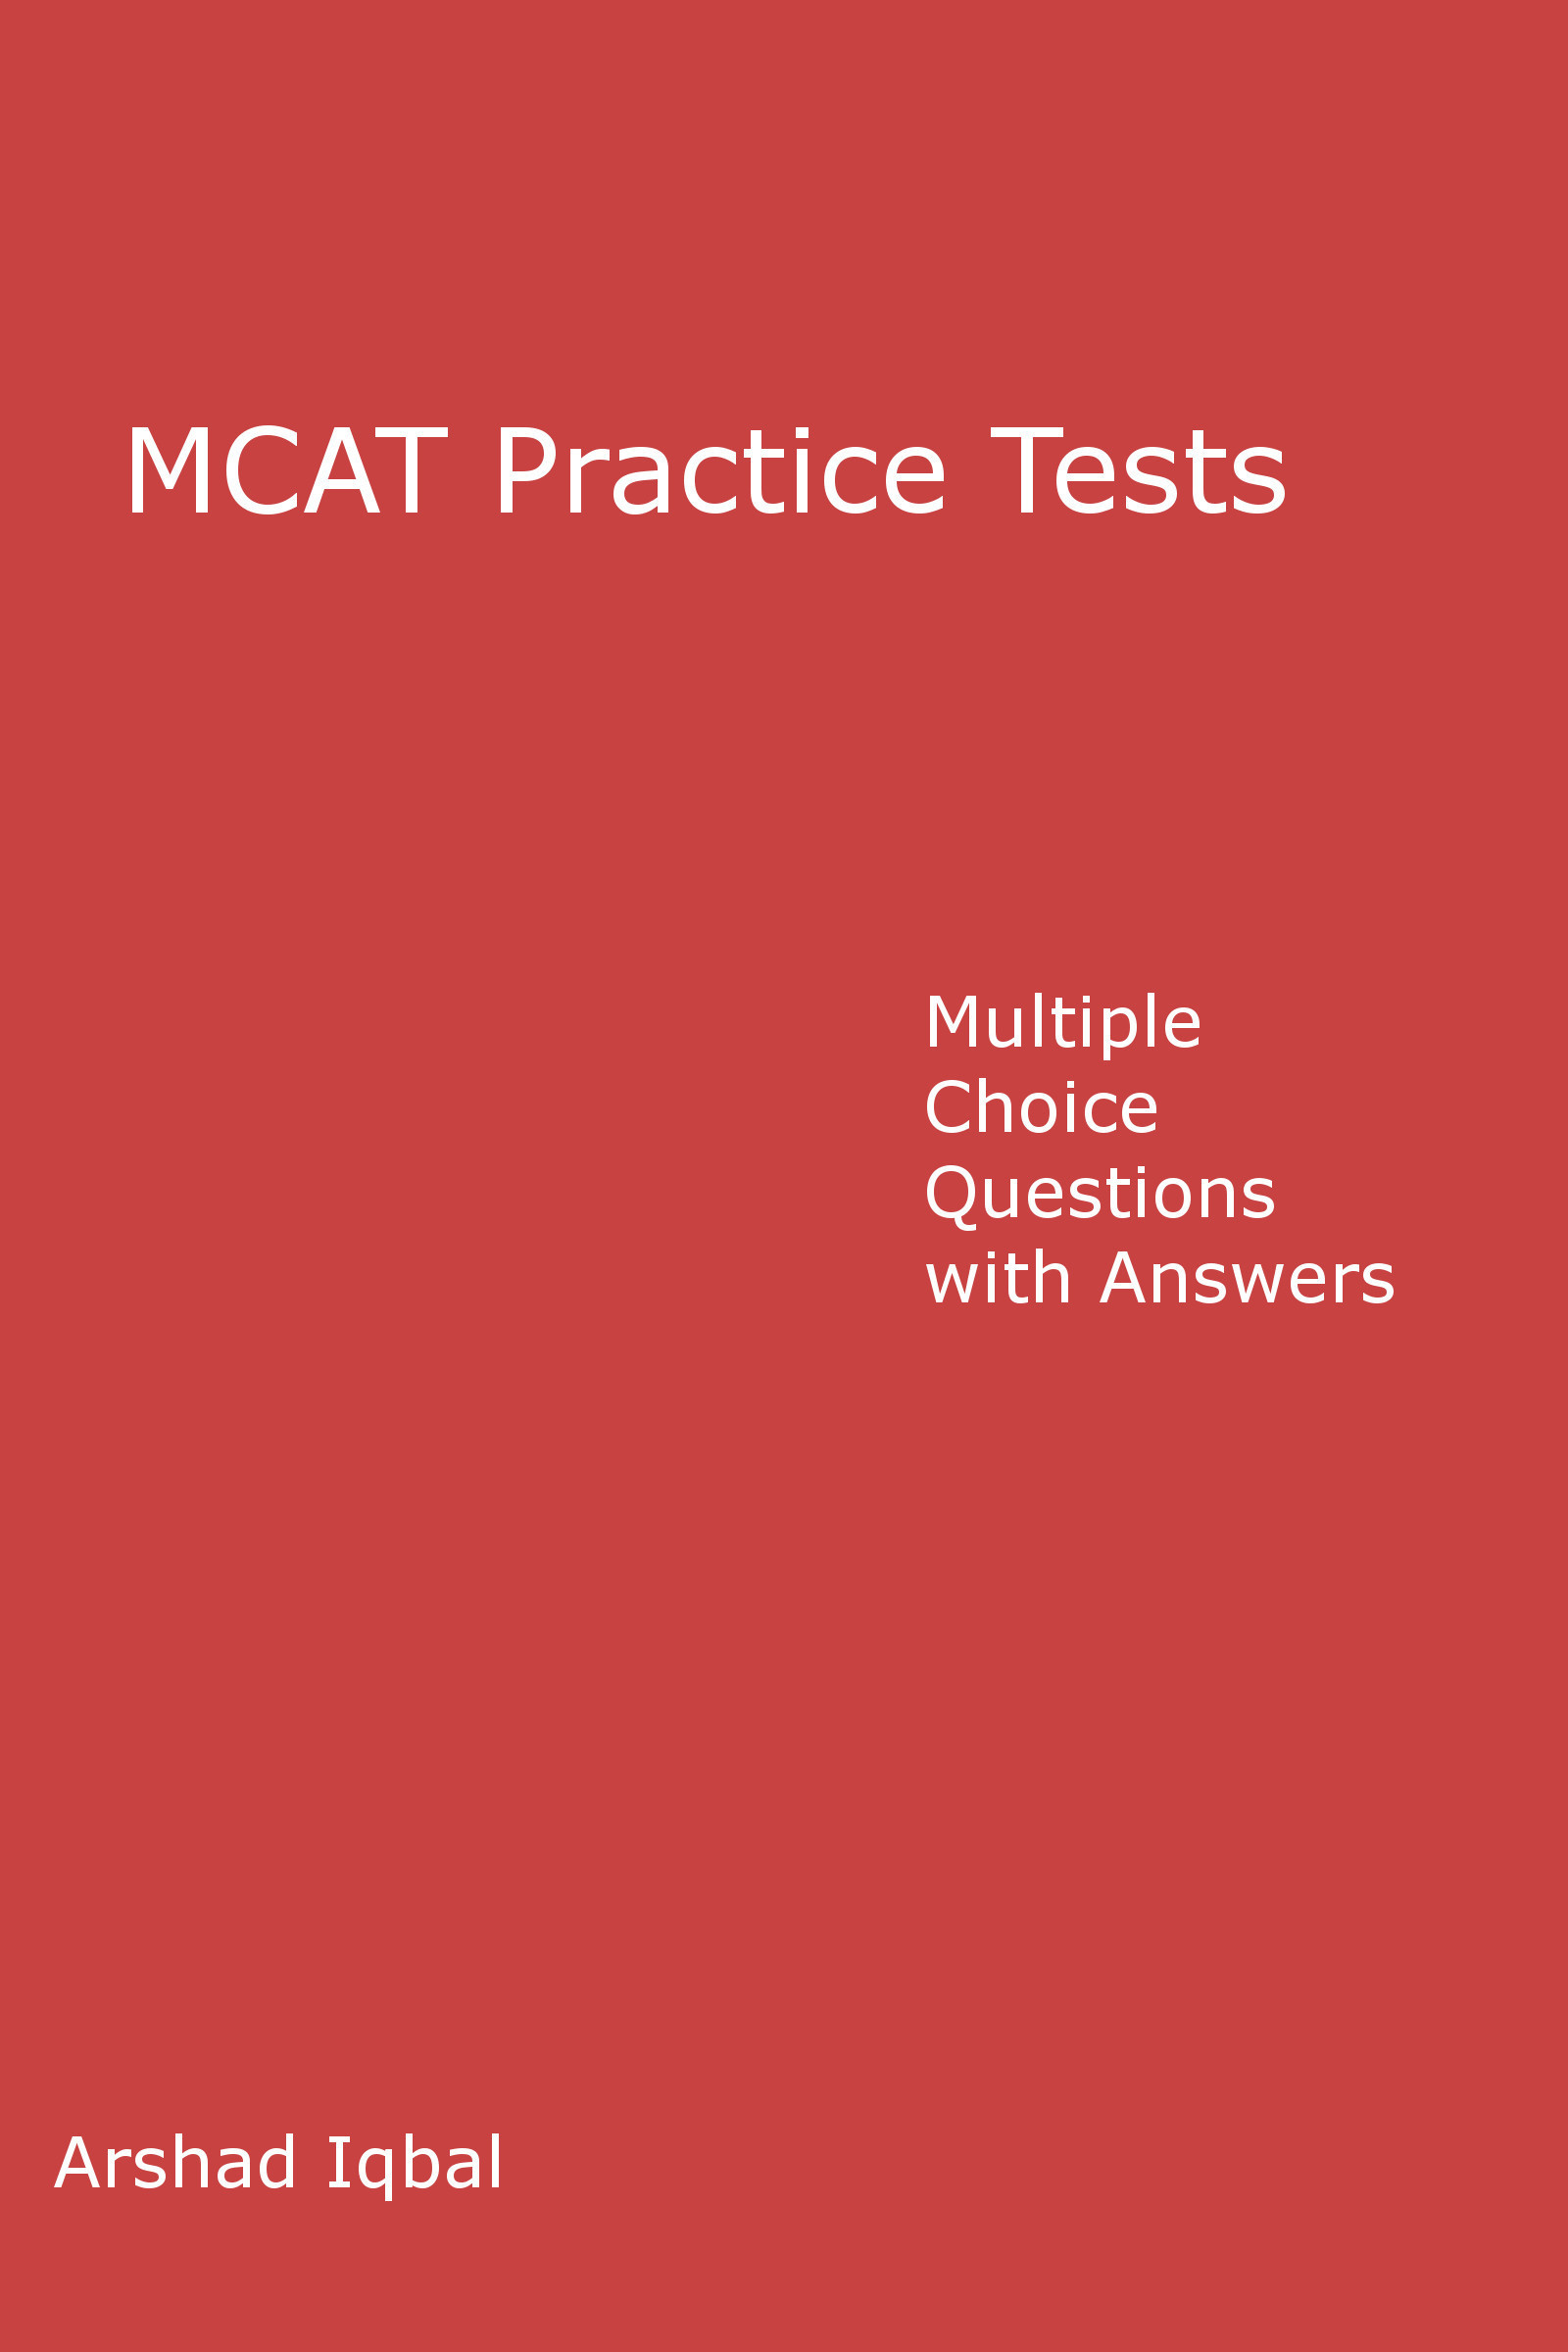 MCAT Practice Tests: Multiple Choice Questions (MCQs) Quiz & Tests